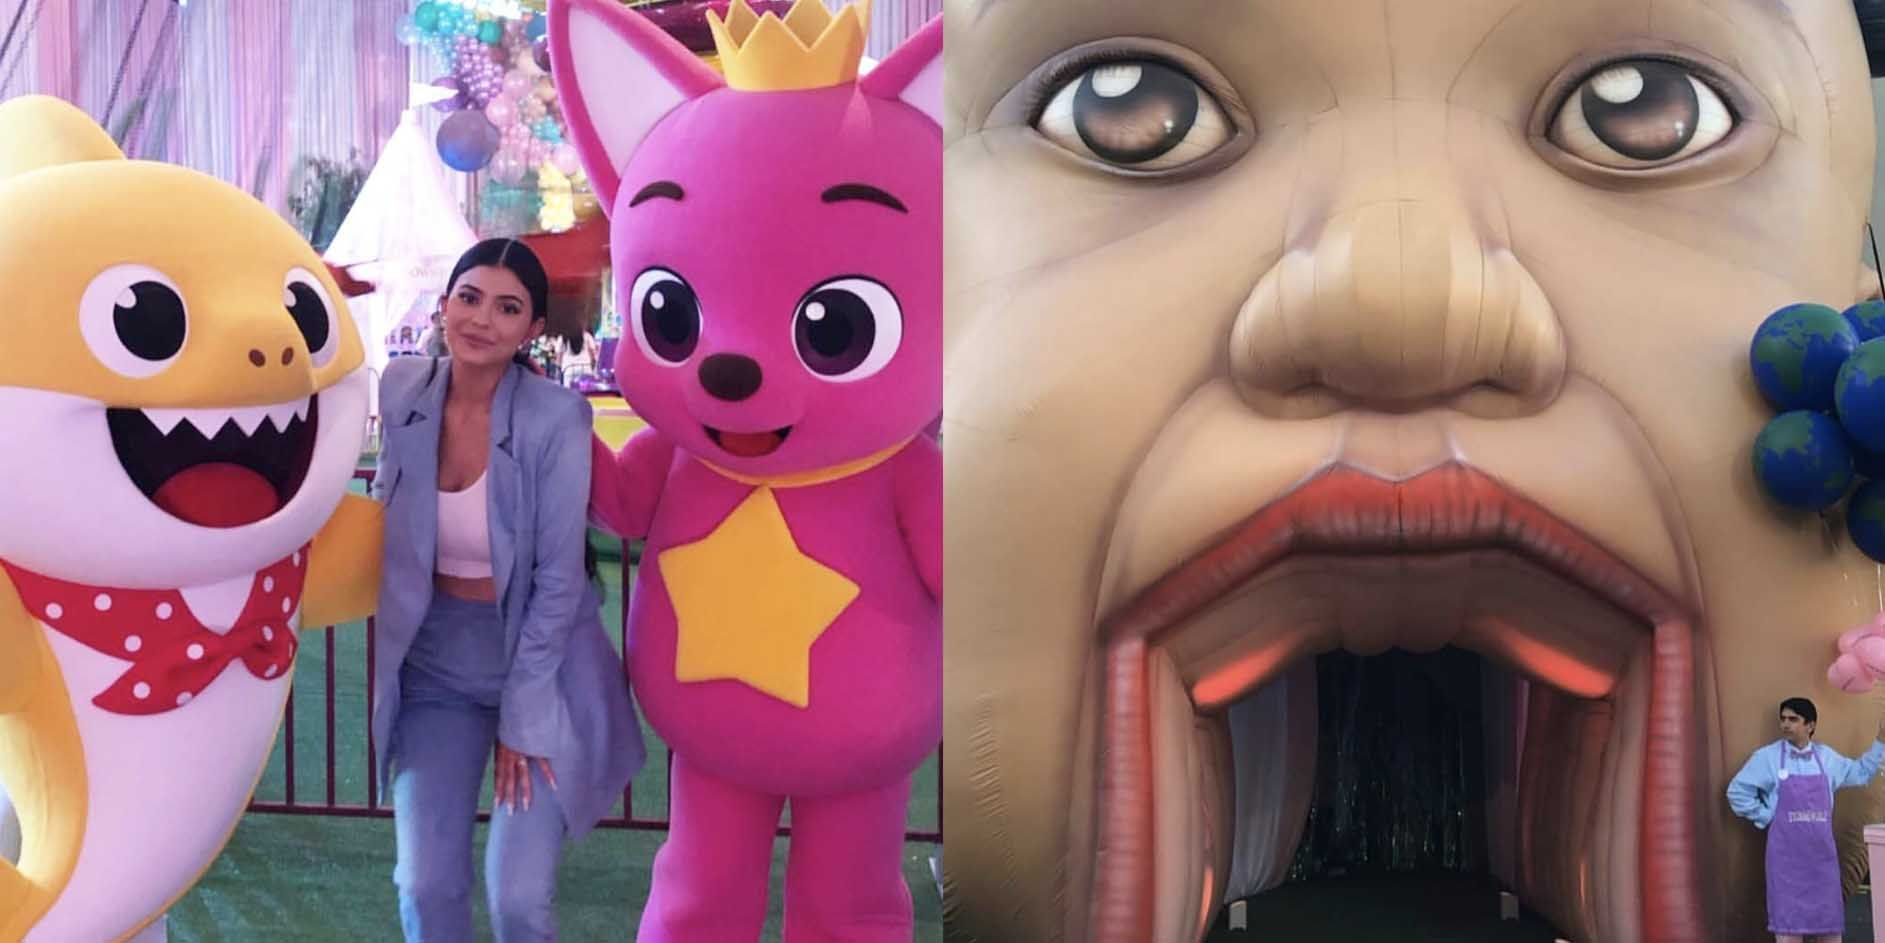 Kylie Jenner Built Stormi An Entire Theme Park To Celebrate Her First Birthday Party